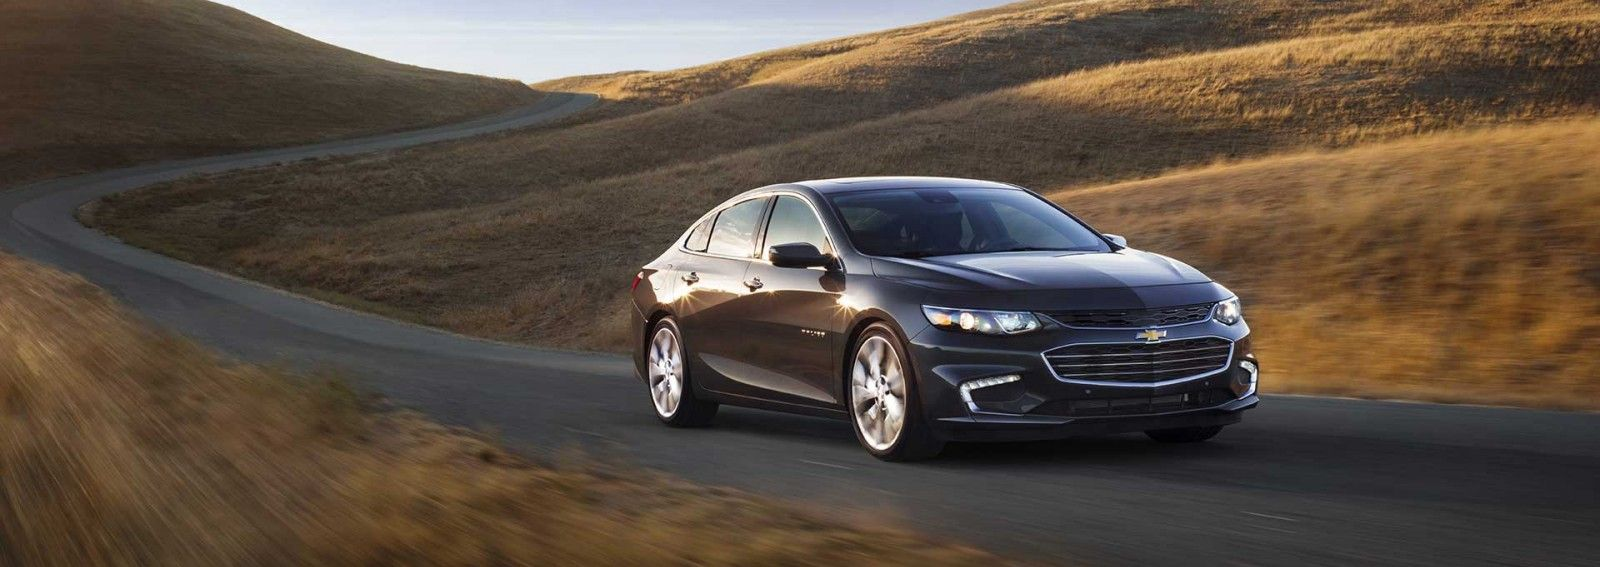 2017 Chevy Malibu For Sale Near Boardman, OH